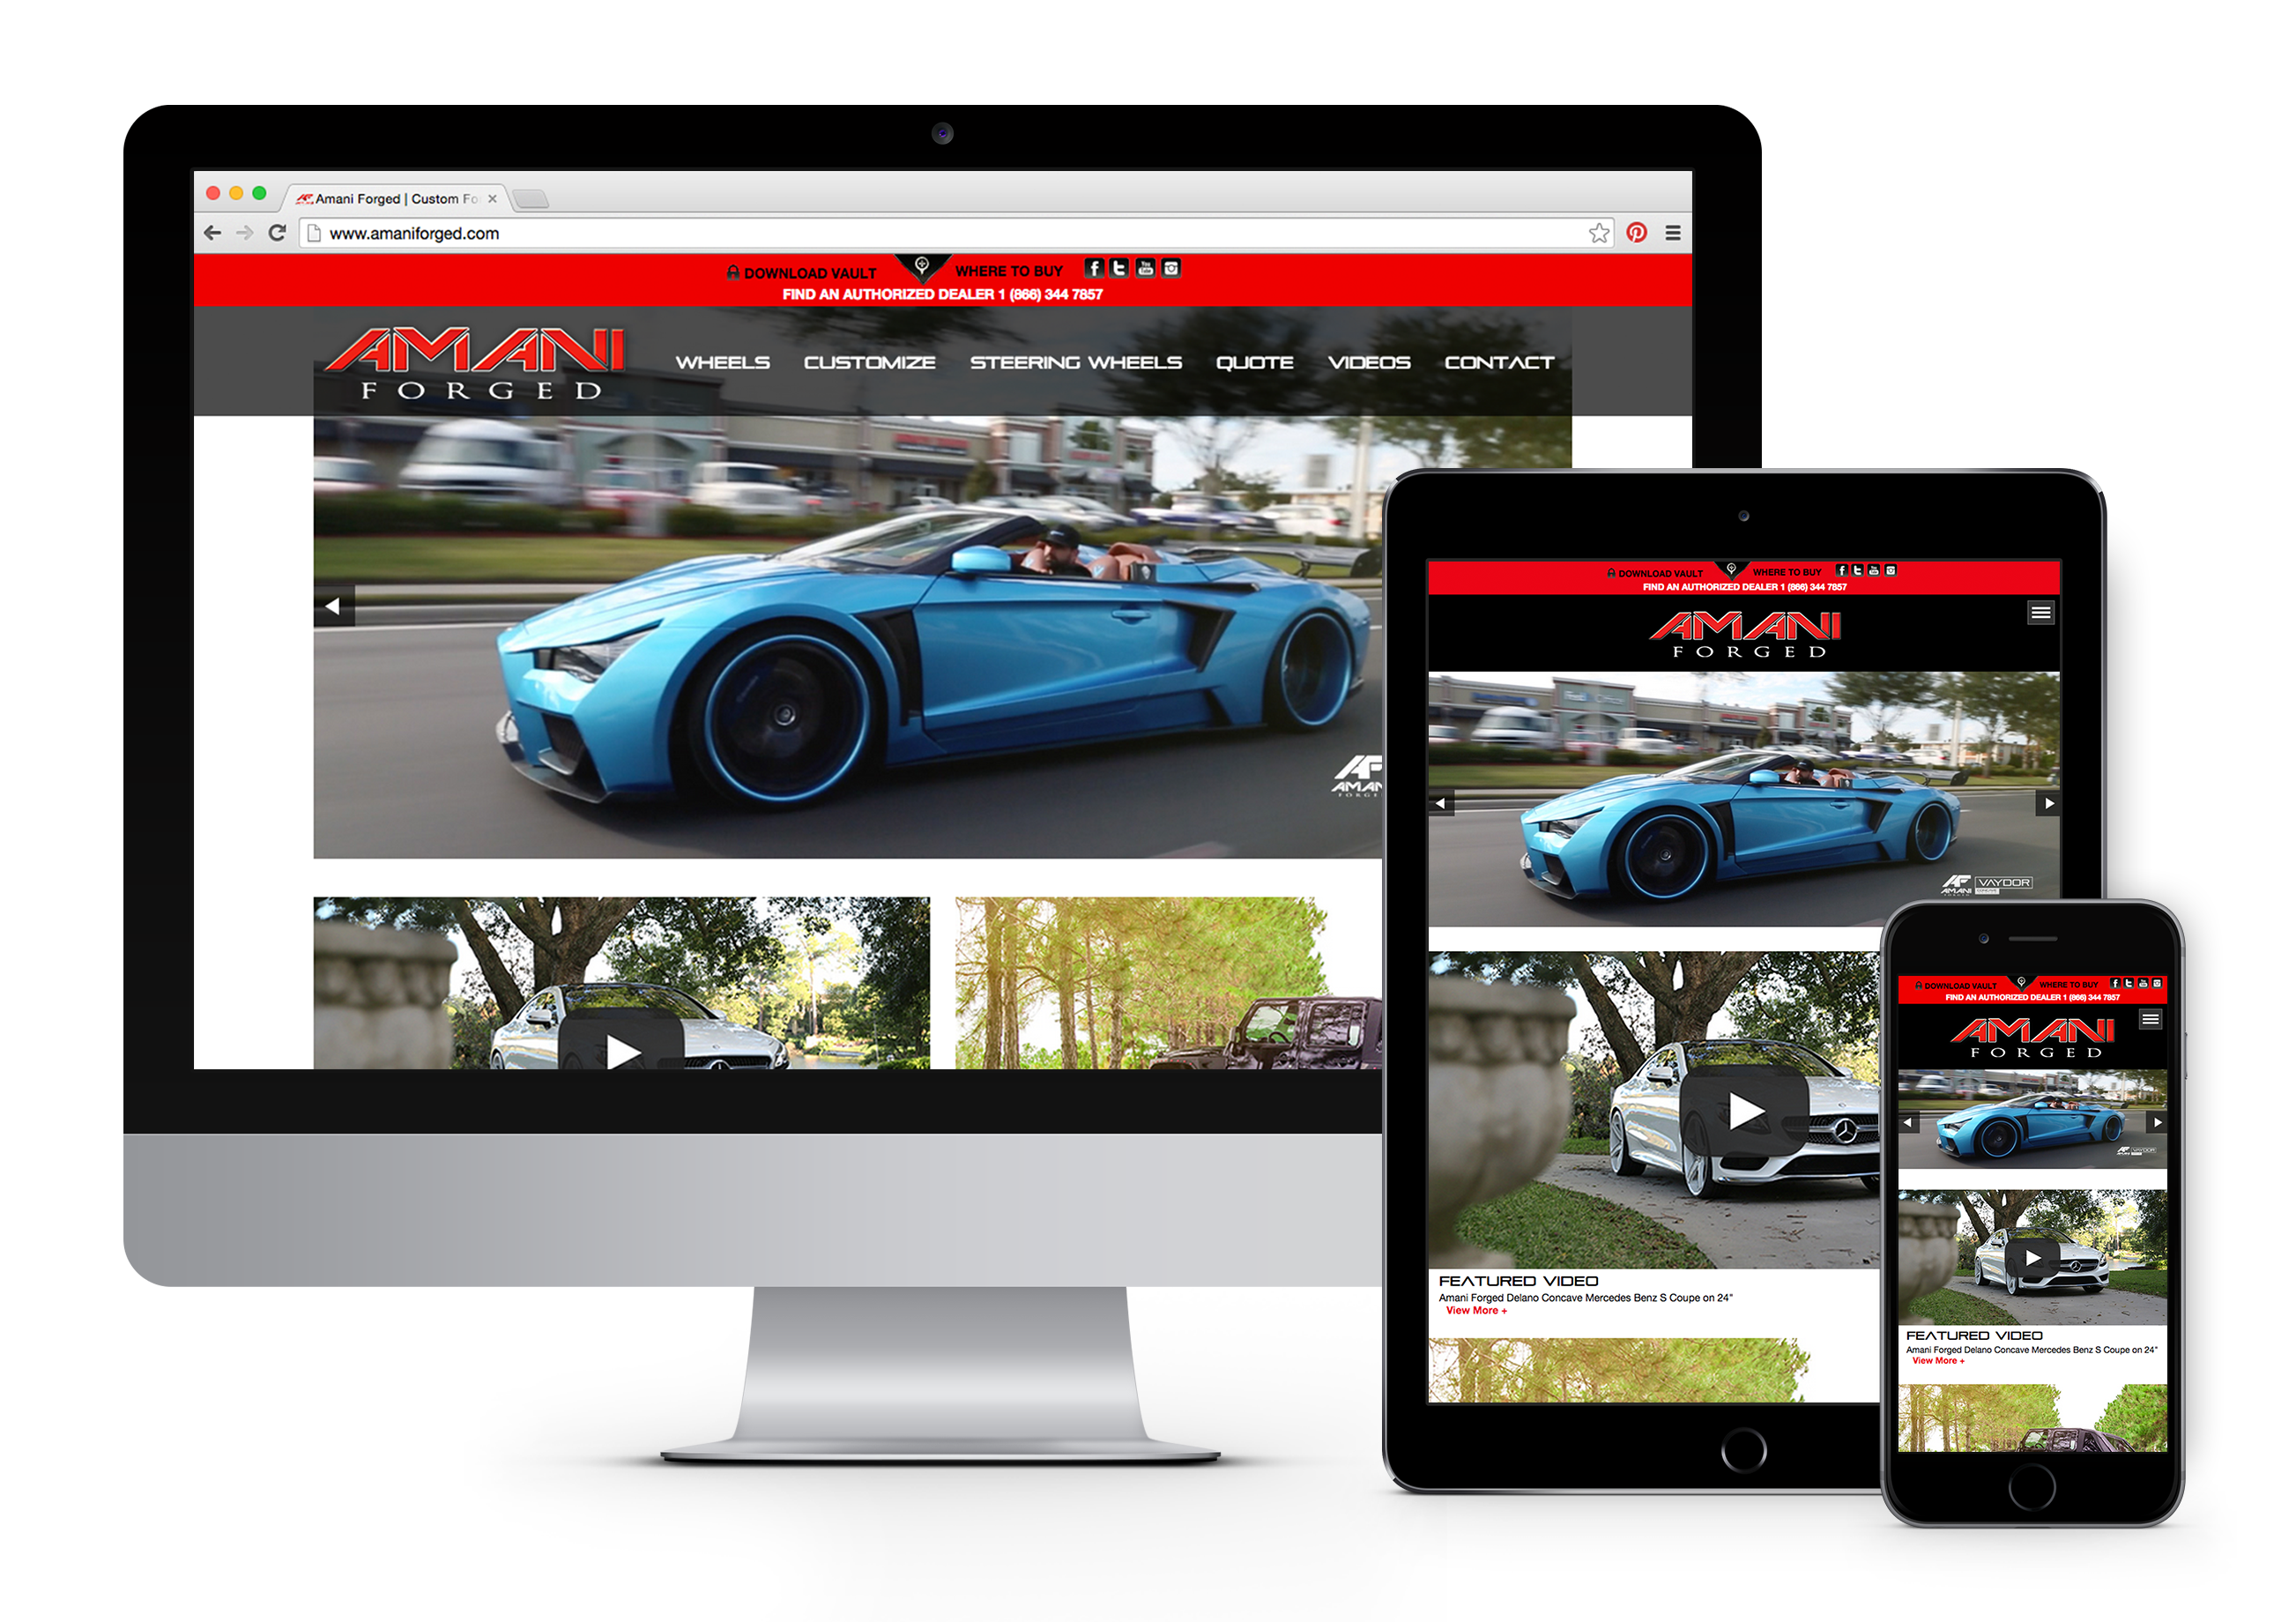 Amani Forged Responsive Website Design